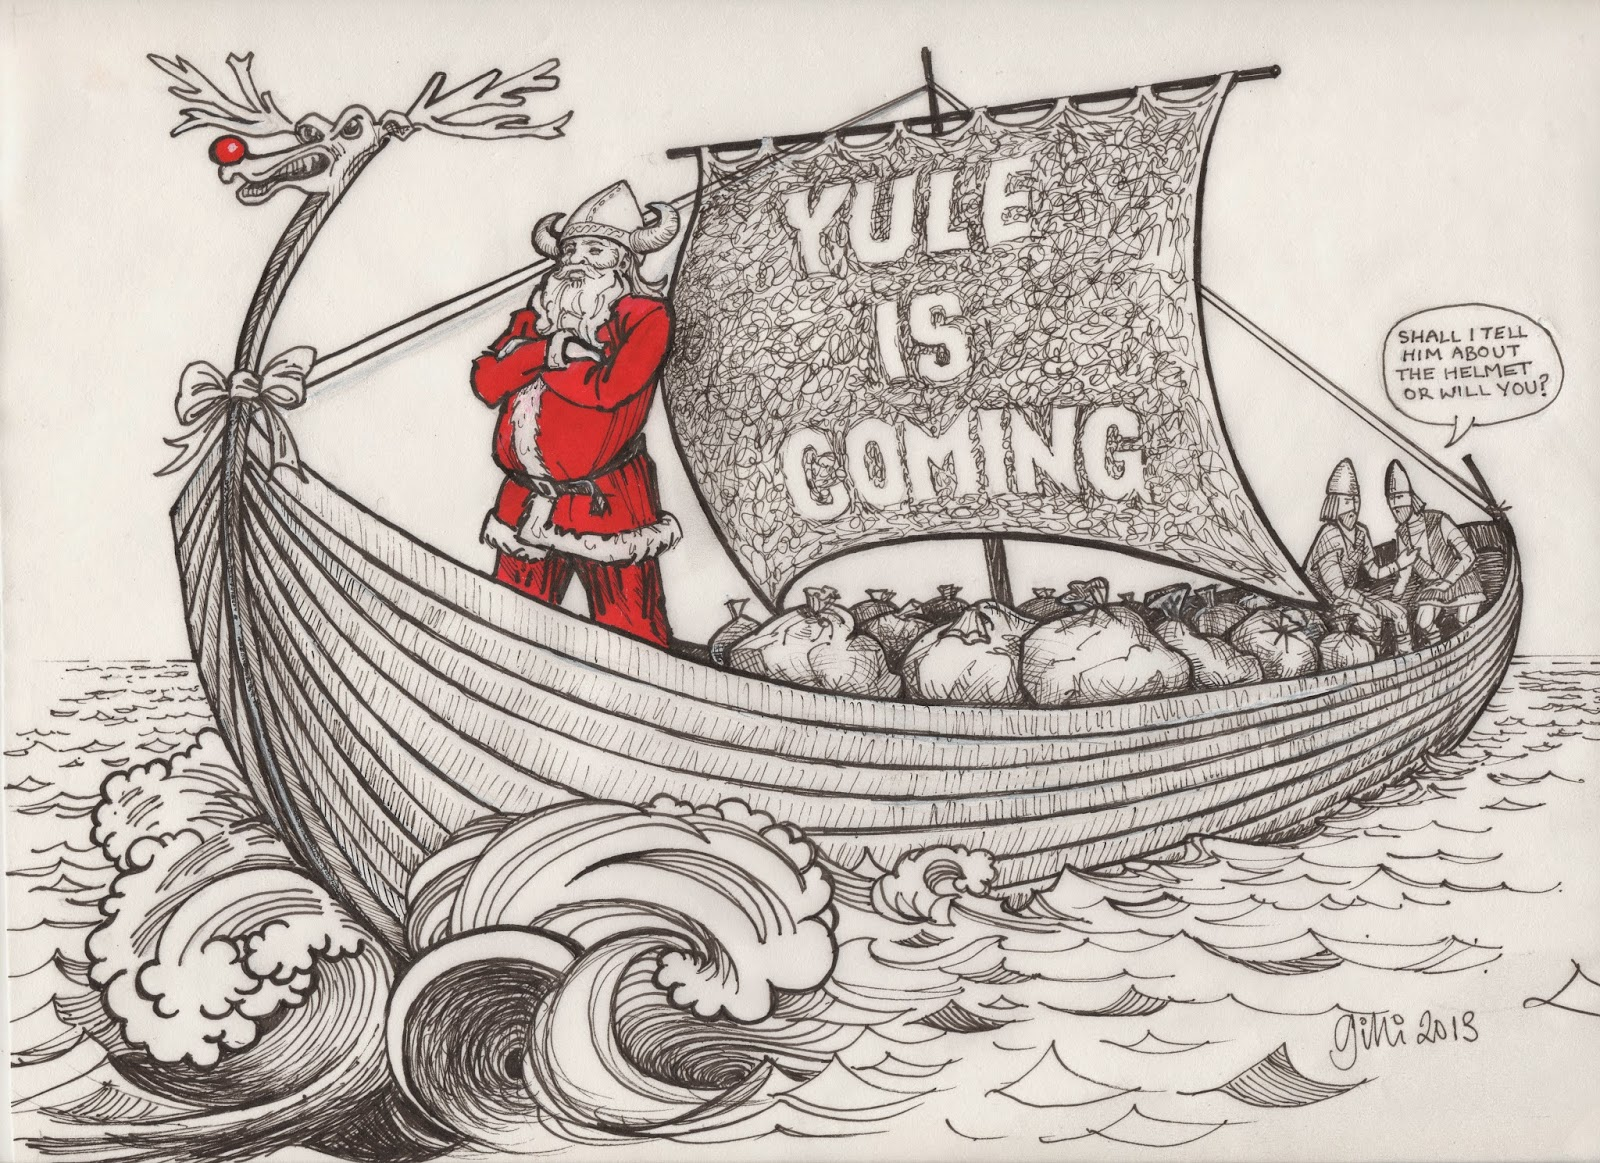 one of the very welcome bonuses of the whole project was that it gave me the idea for our 2013 christmas card - Viking Christmas